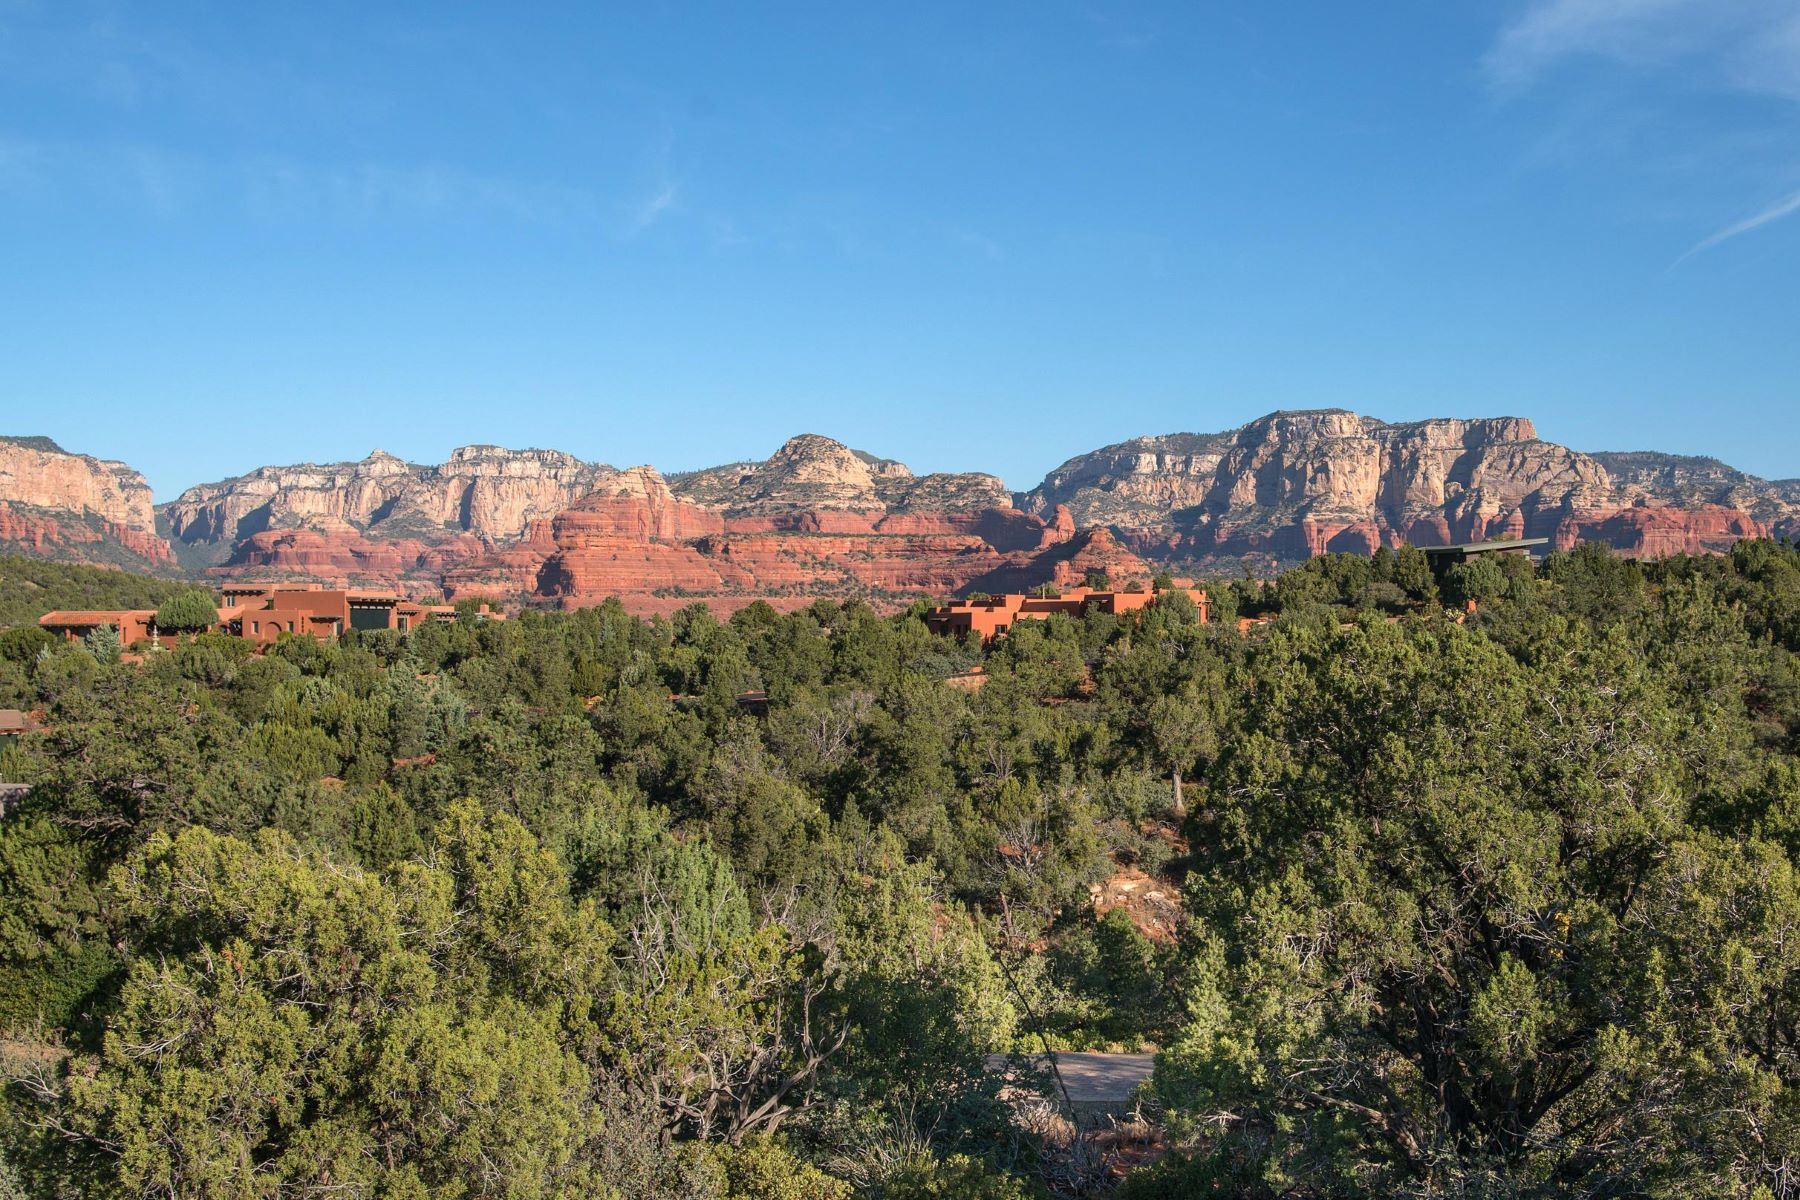 Terreno por un Venta en Incredible Land, Priced To Sell 120 Cinnabar DR 54, Sedona, Arizona, 86336 Estados Unidos